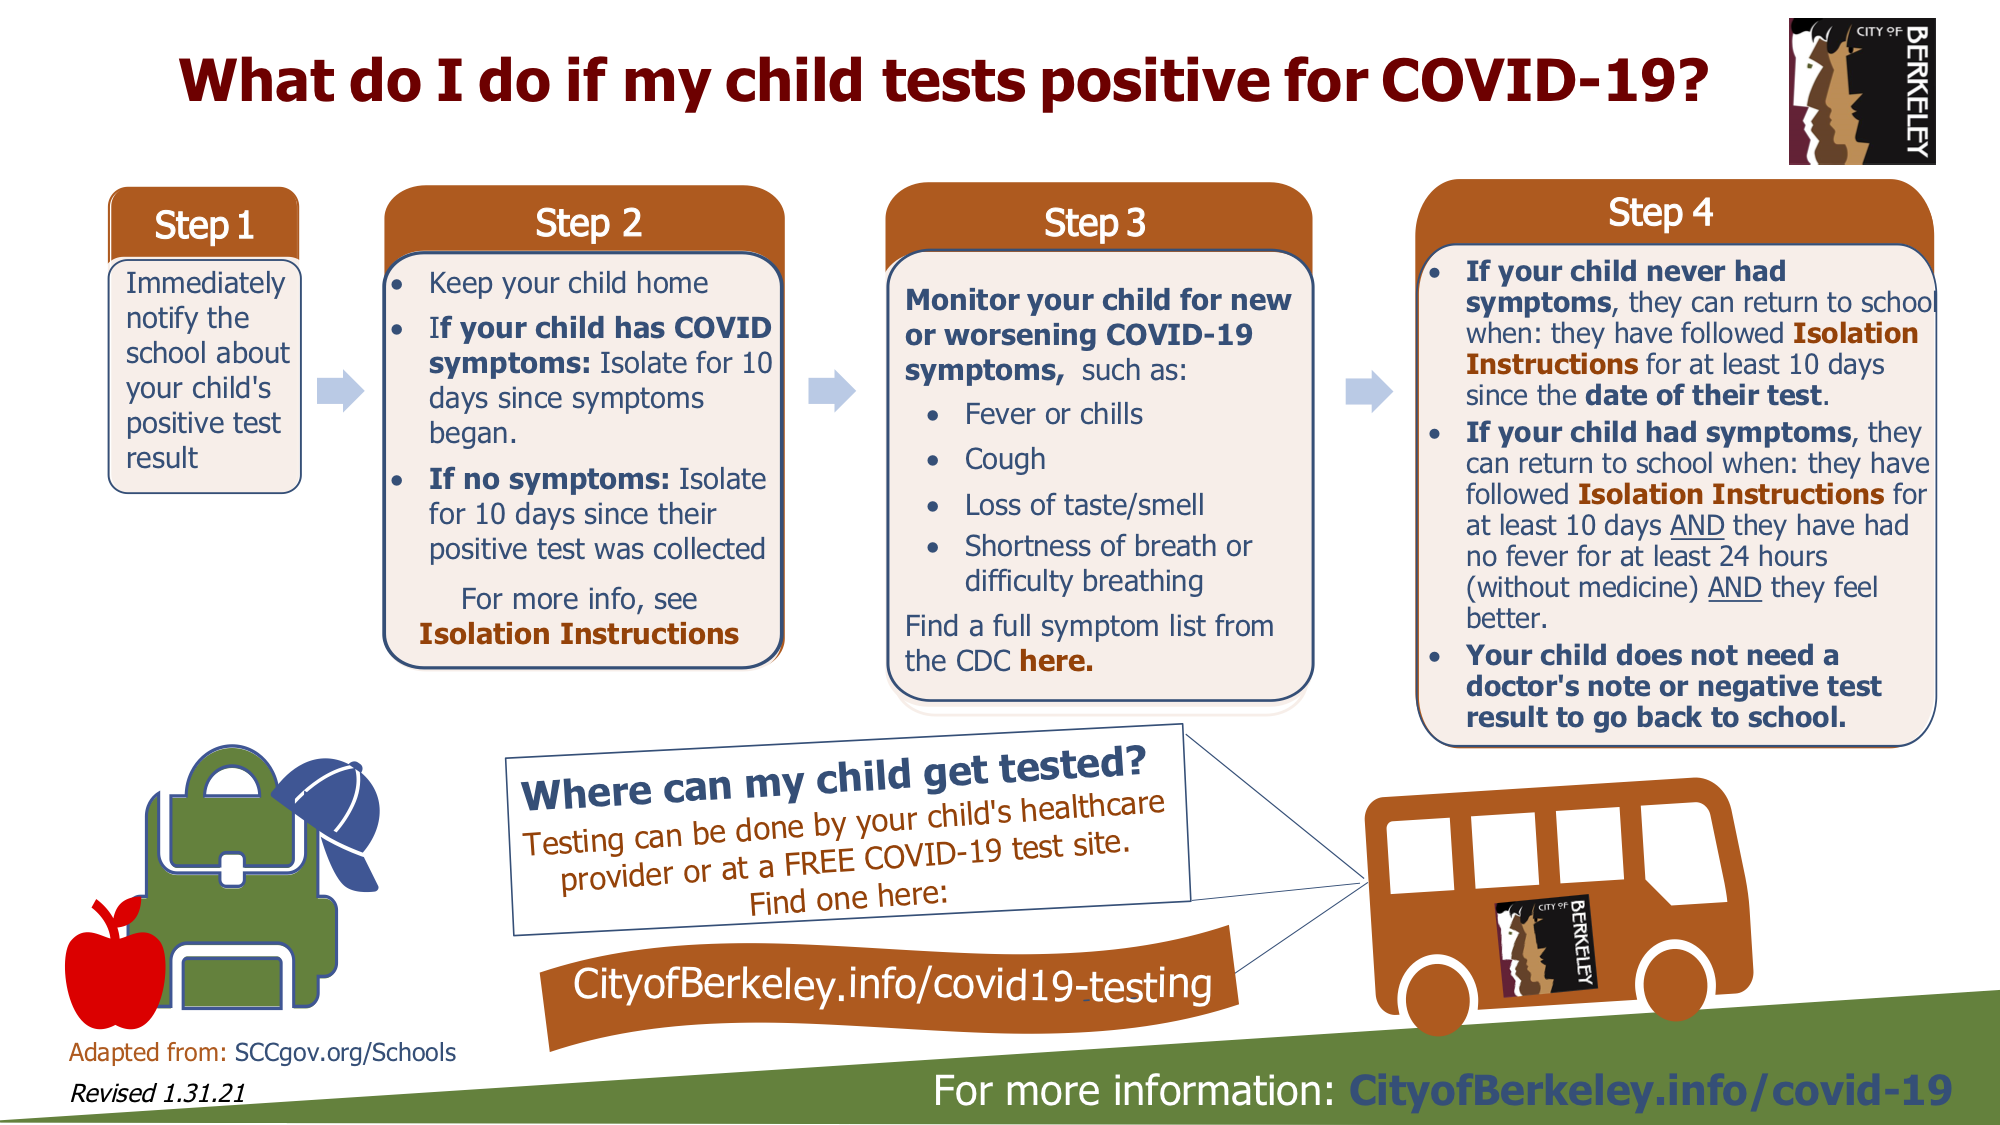 Information about what to do if your child tests positive for COVID